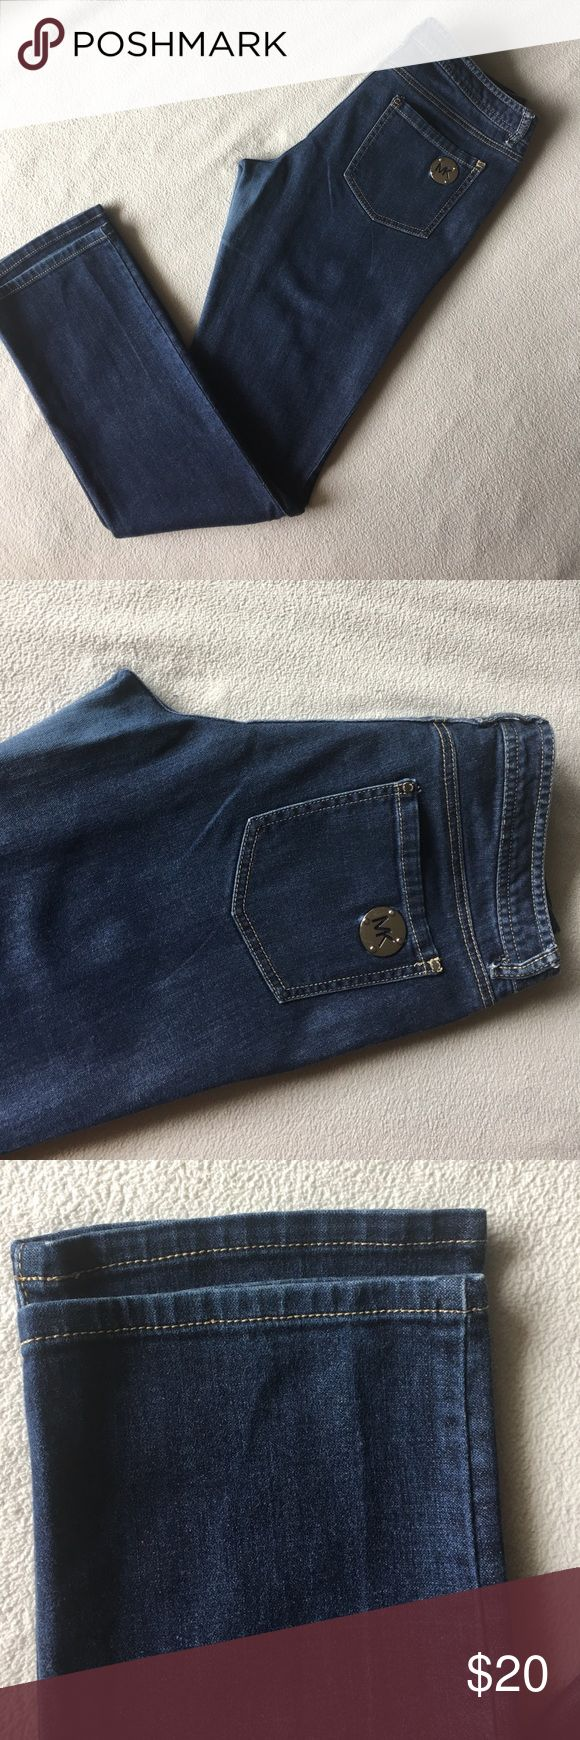 "MICHAEL KORS SLIM JEANS Size 8 Preowned in good condition. Fits good to size. Lightweight. Inseam 31"". Waist 34"" Michael Kors Jeans Skinny"